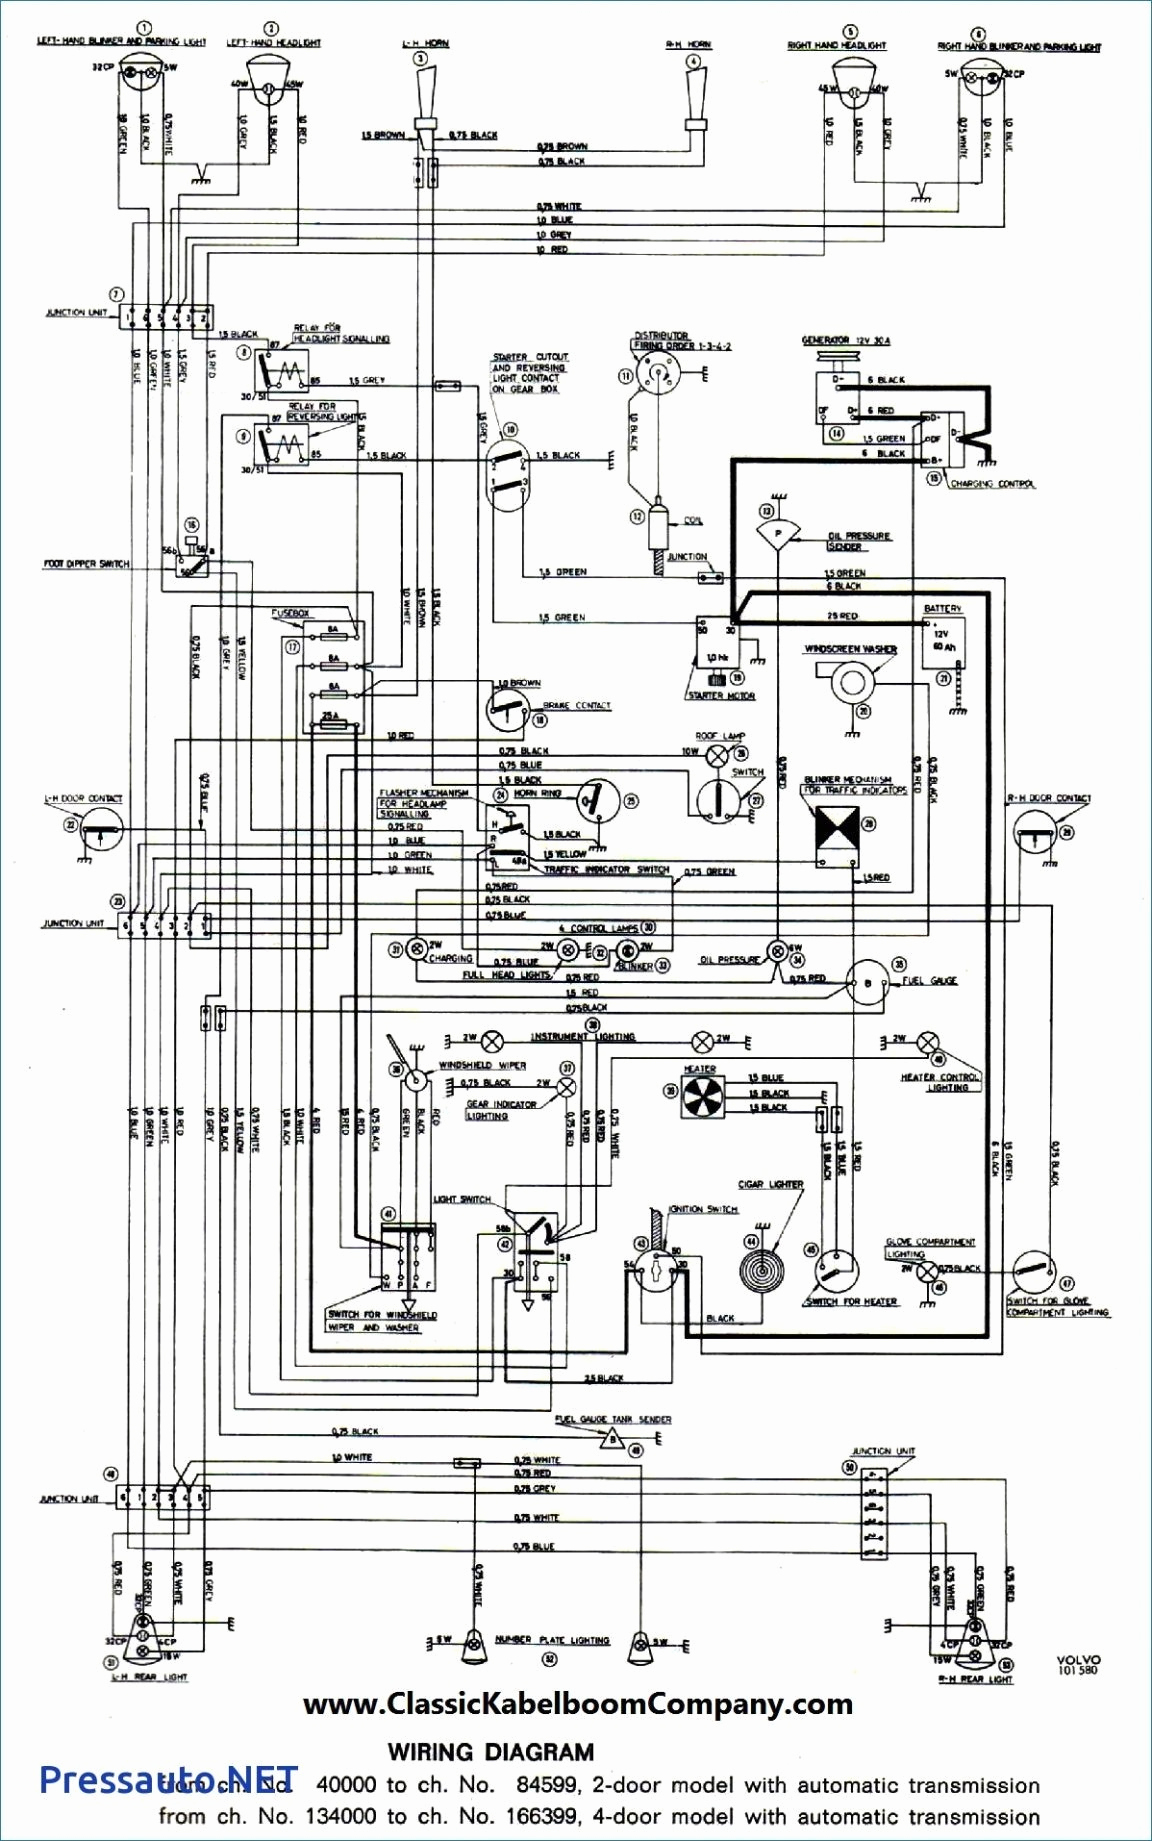 Automatic Transfer Switch Wiring Diagram Free Gallery